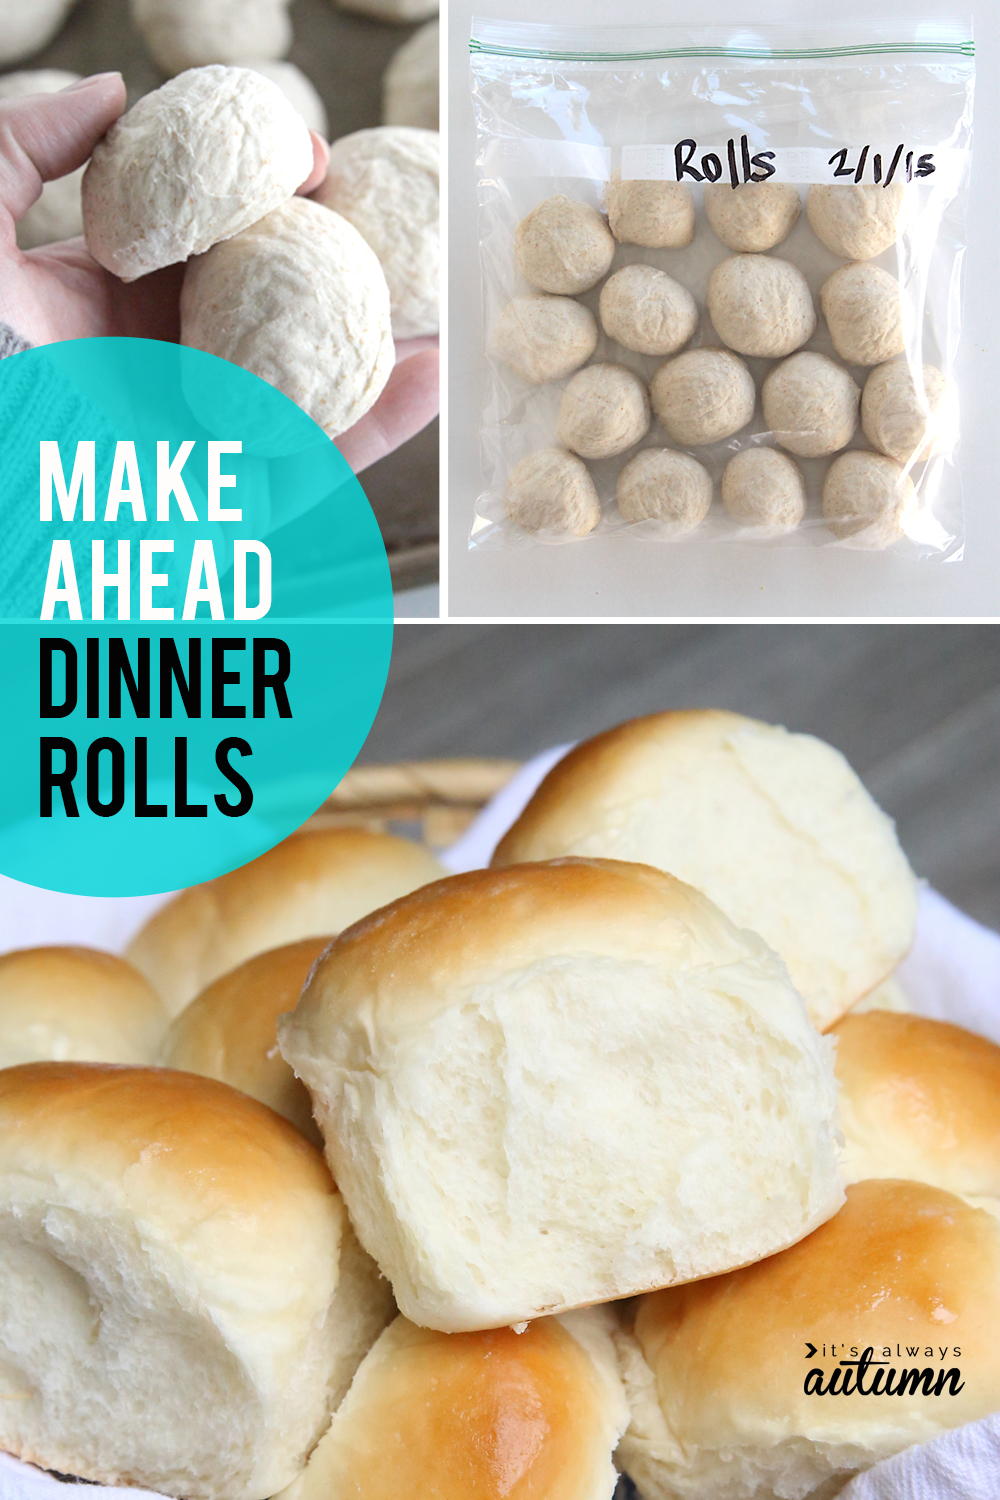 Make ahead dinner rolls recipe! How to make roll dough in advance and freeze it to bake later. Perfect for holiday dinners!